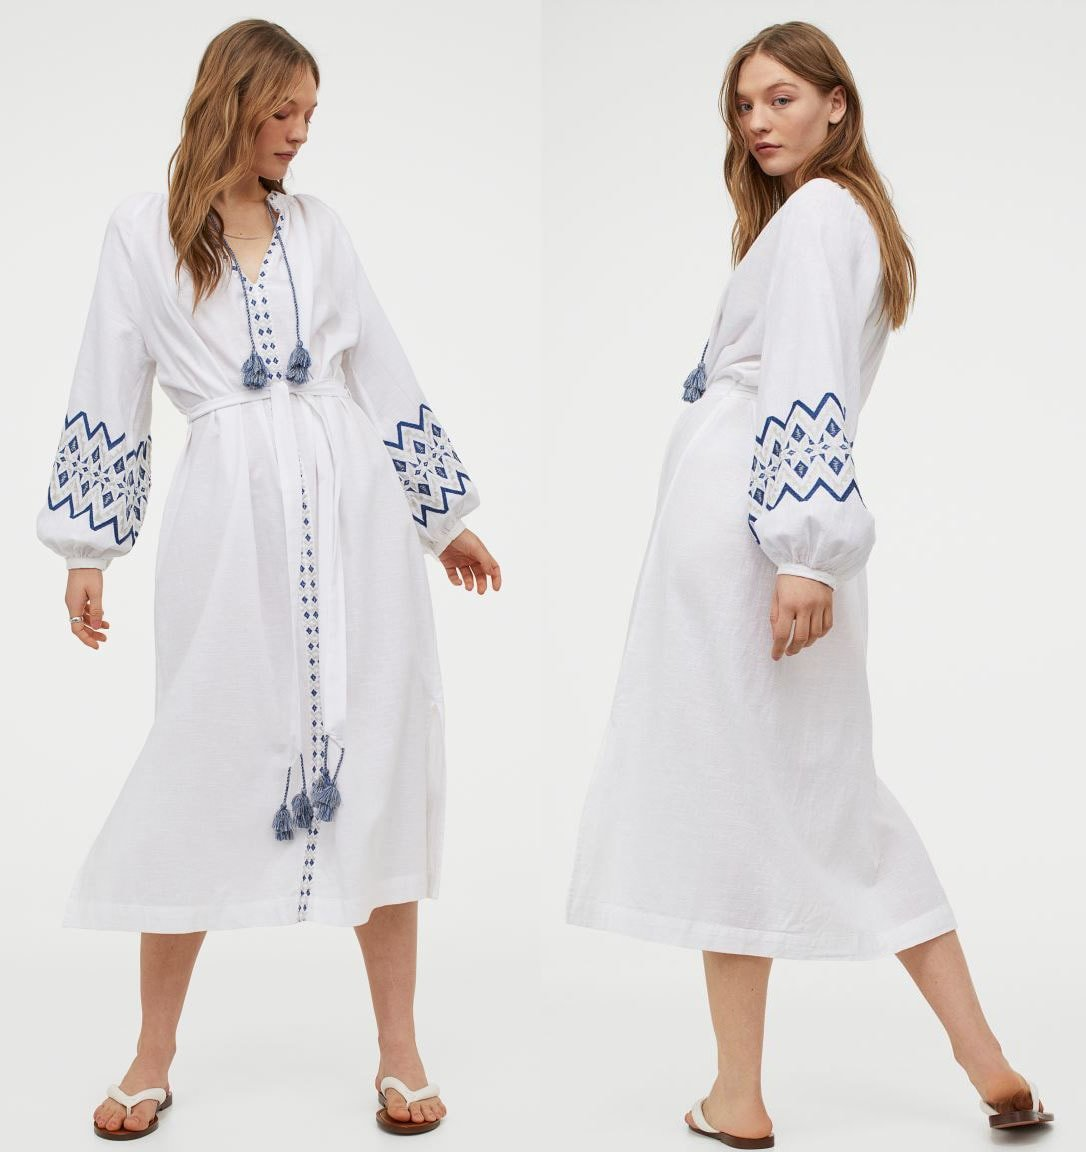 A lightweight kaftan dress made from woven cotton fabric with embroideries, tassels, and raglan balloon sleeves